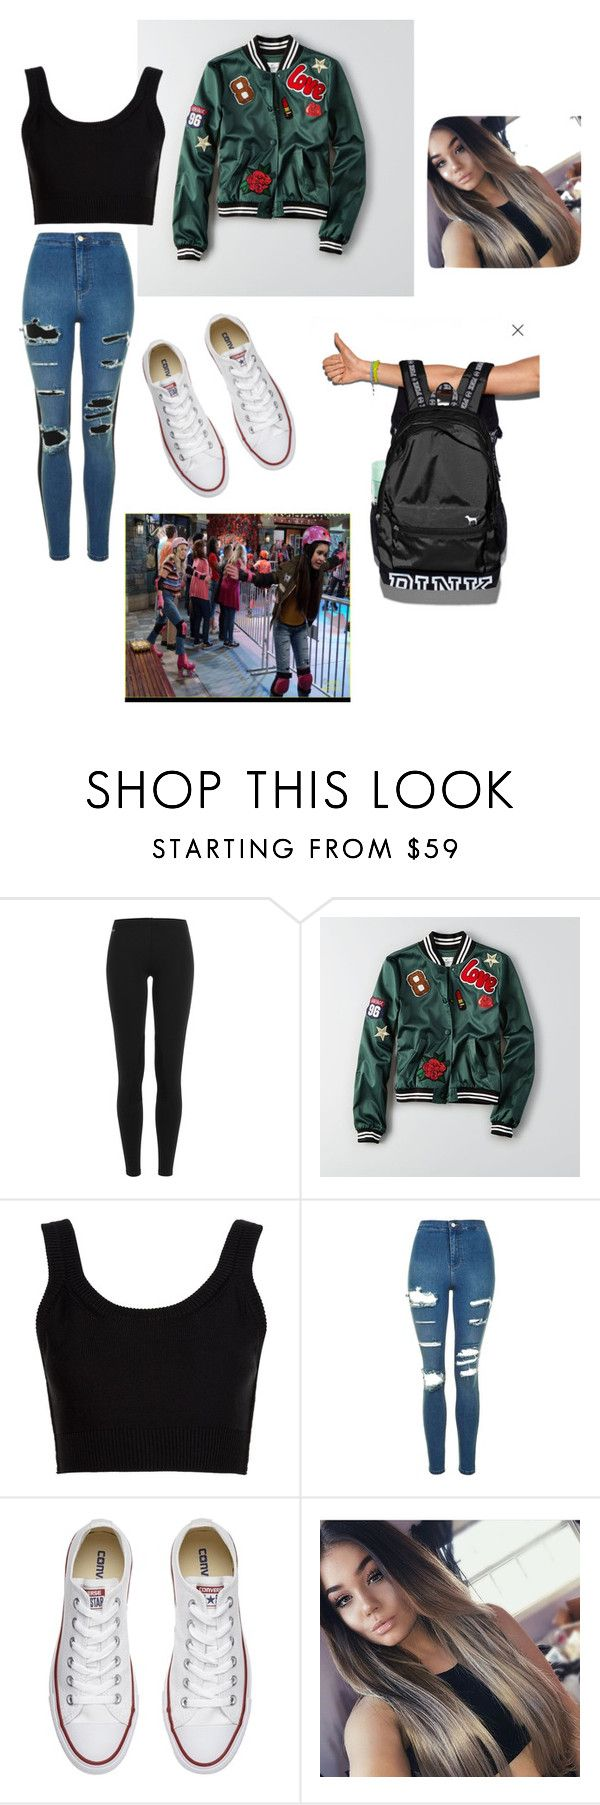 """""""Back To School Outfit #2 (College or High School) Inspired by Best Friends Whenever"""" by jewls20 ❤ liked on Polyvore featuring Polo Ralph Lauren, American Eagle Outfitters, Calvin Klein Collection, Topshop and Converse"""